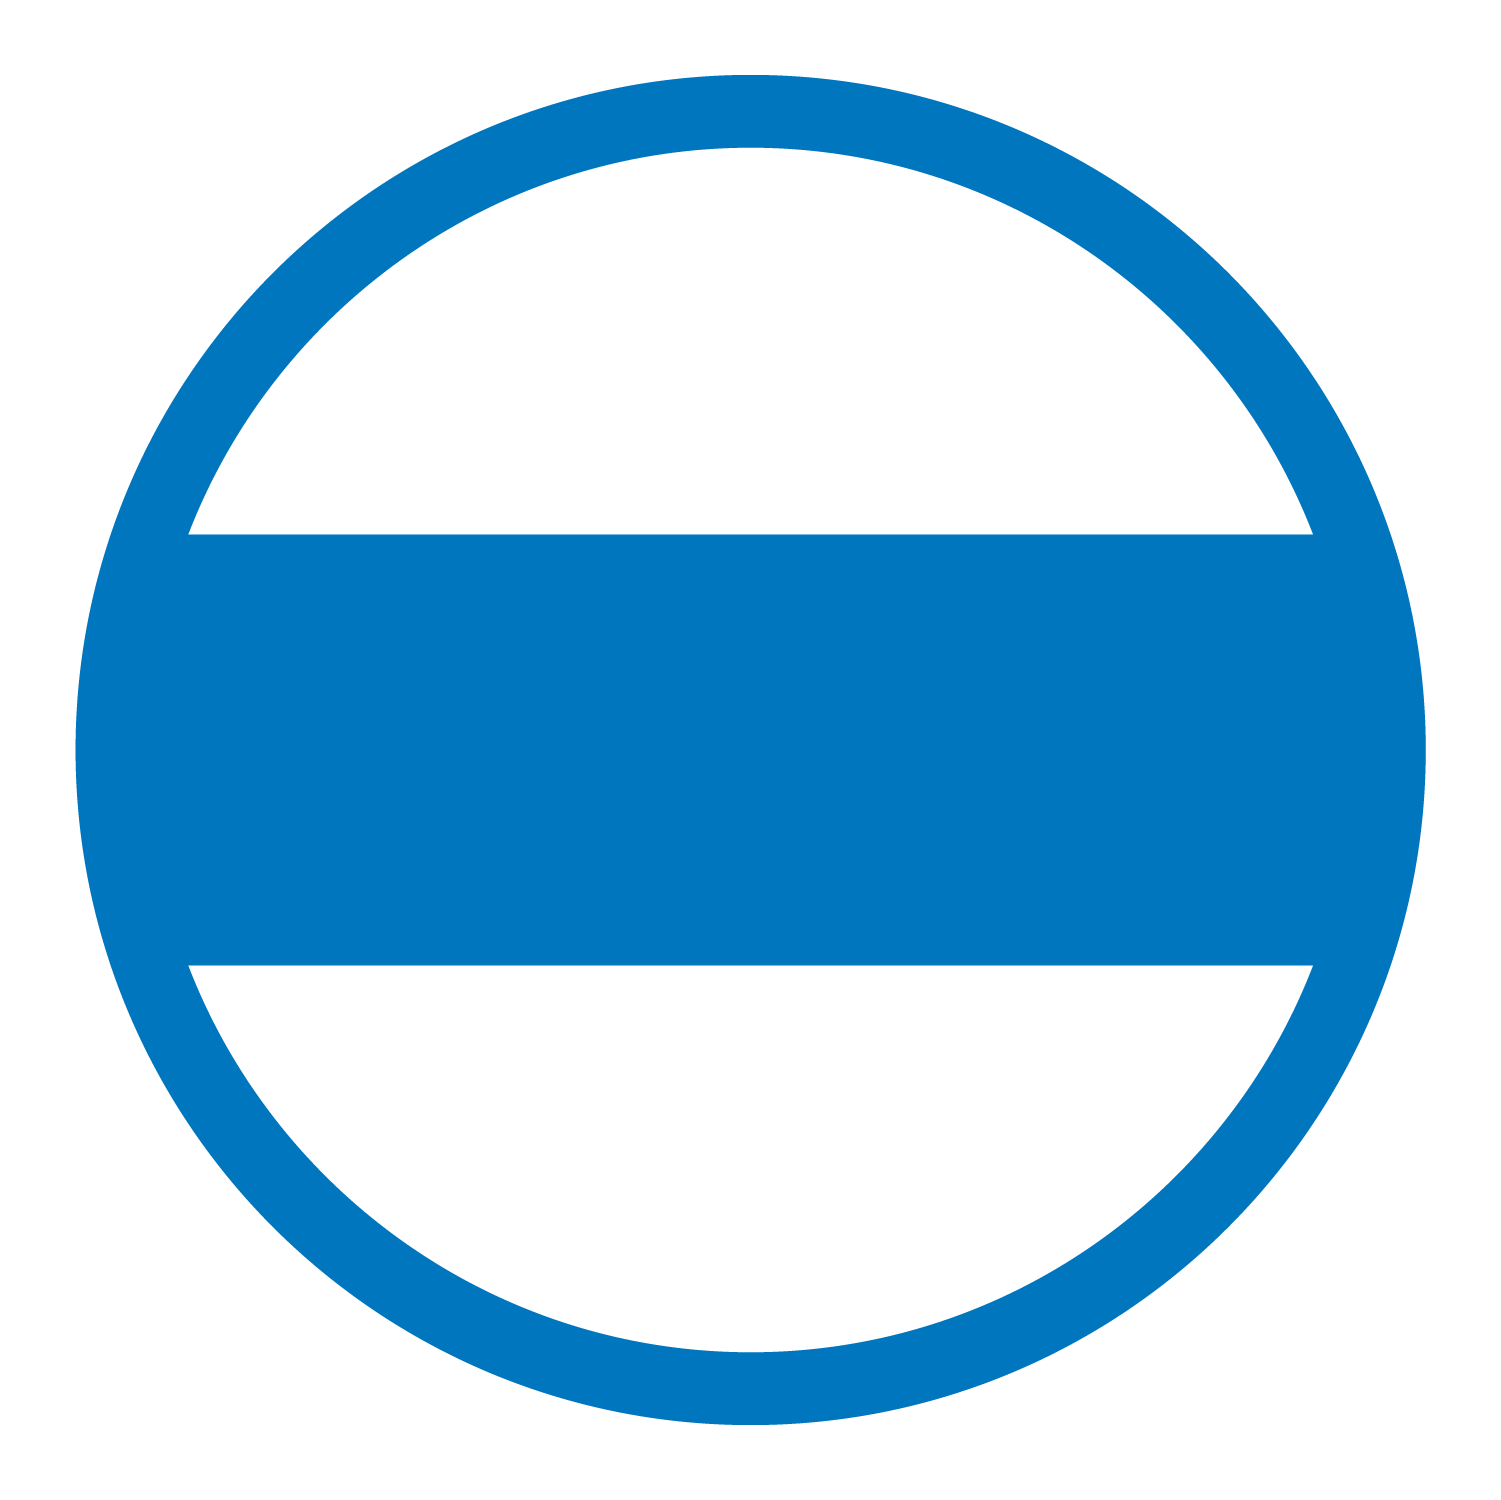 Flat lay blue icon of a closed sign